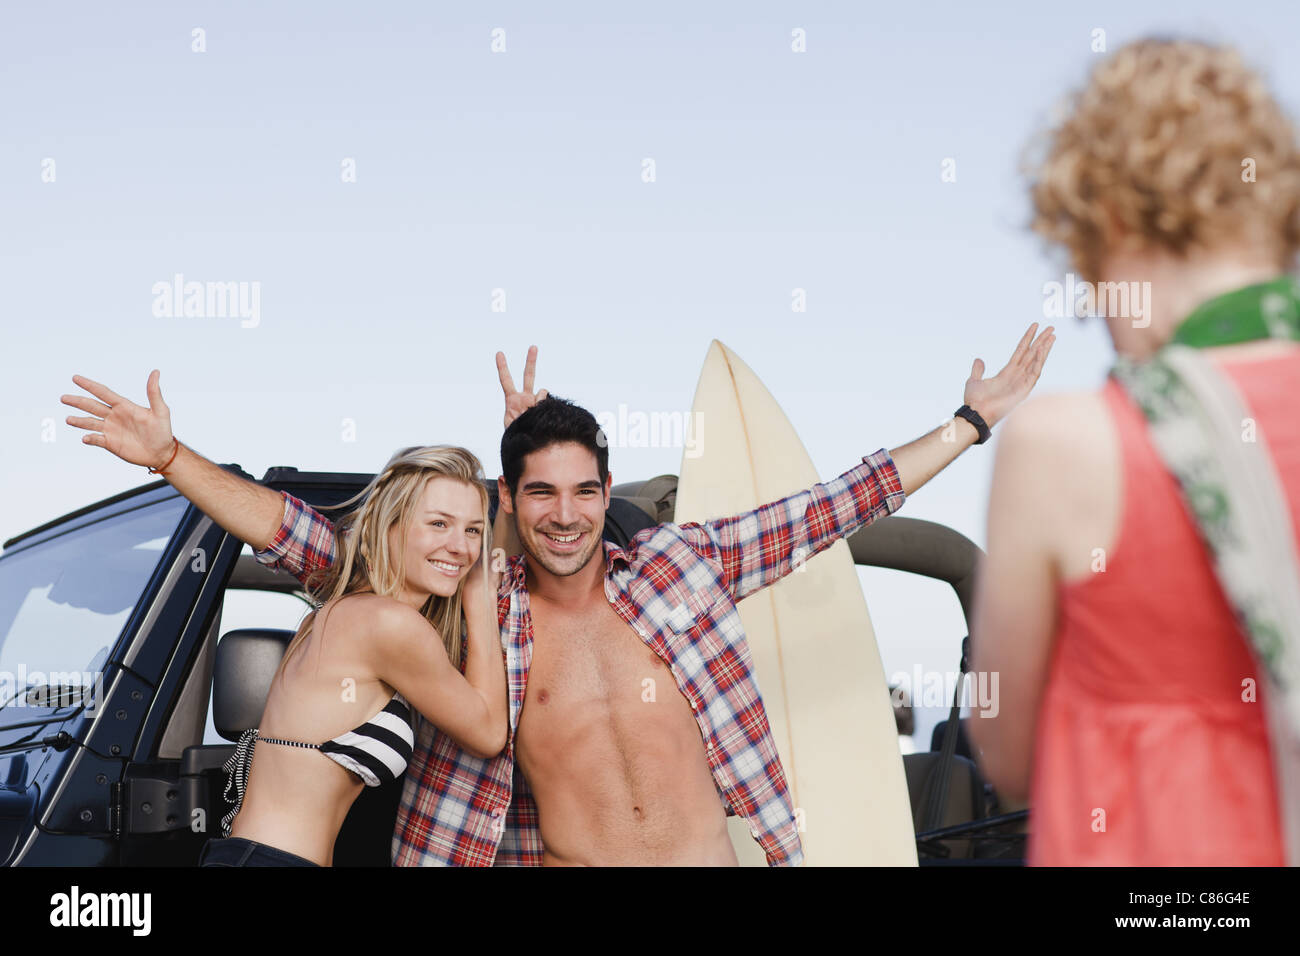 Girl taking picture of couple by jeep - Stock Image